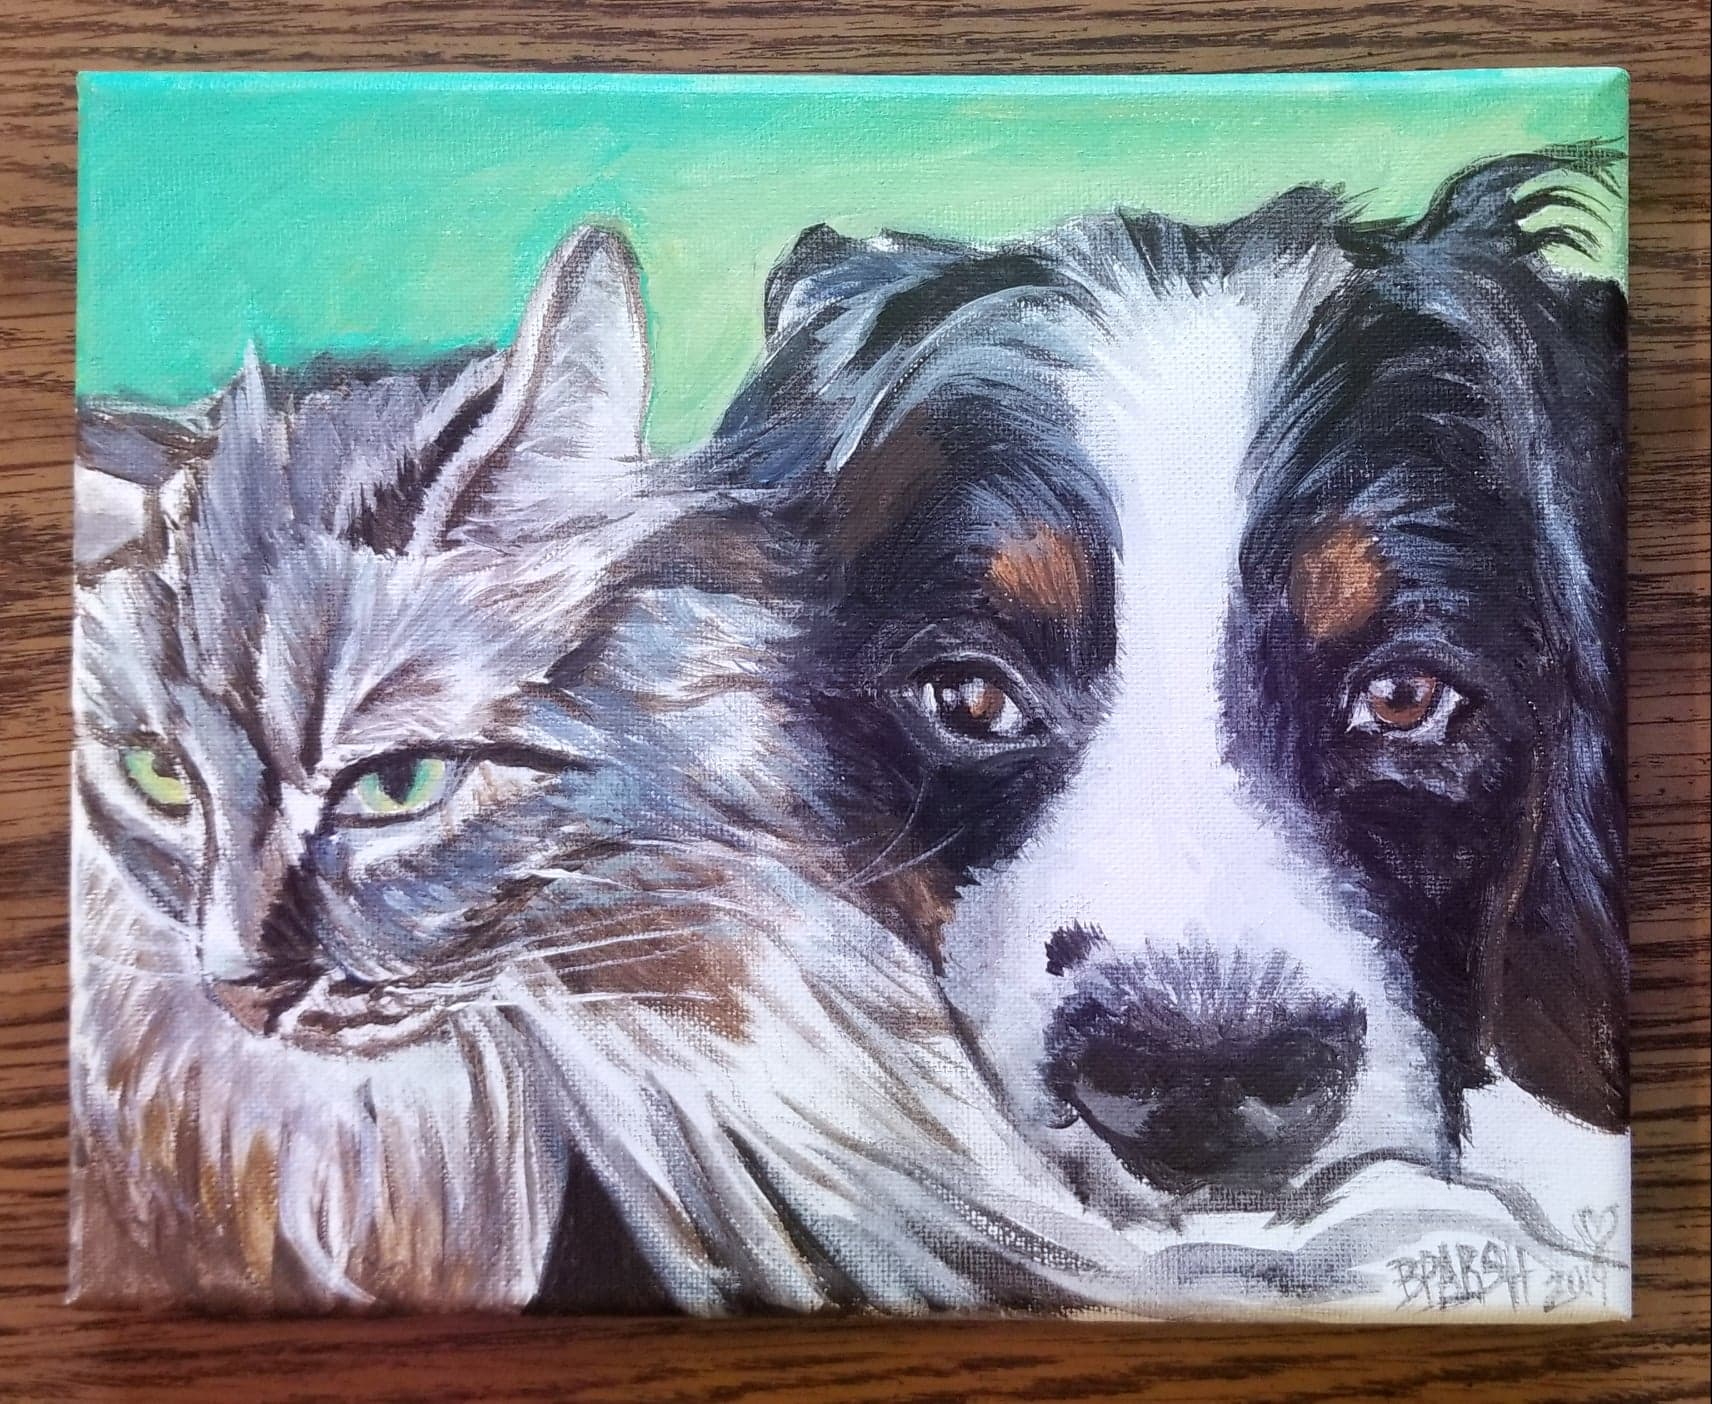 Danny the kitty cat & Reggie the bernese mountain dog (may he rest in paradise) <3 for a big 40 surprise present!